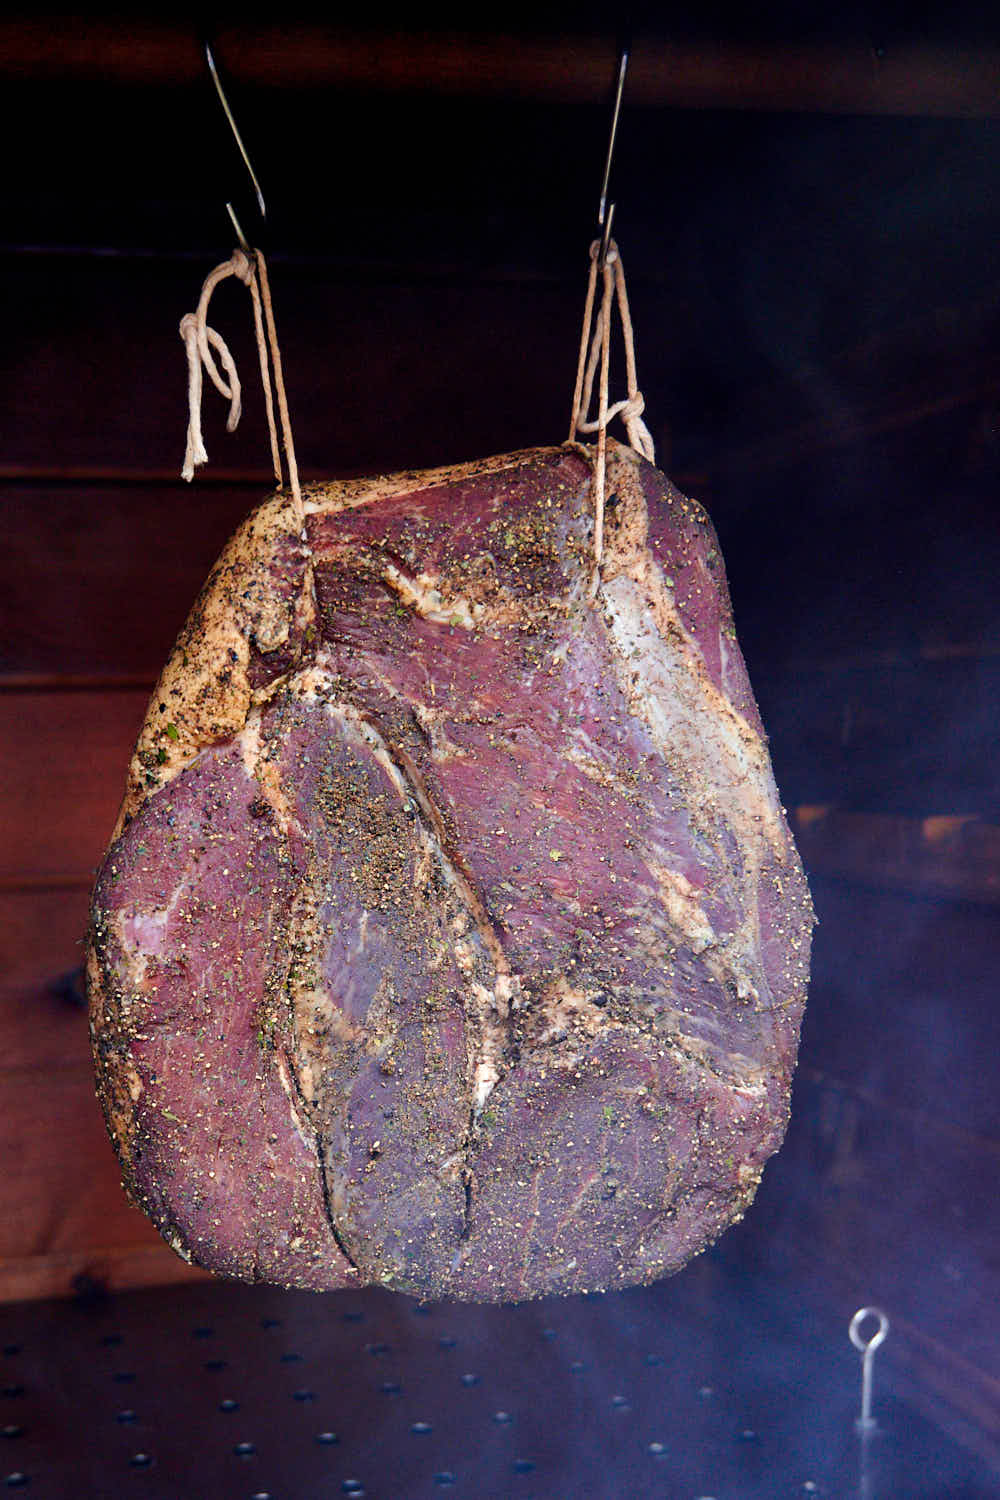 Cold smoking meat in a smokehouse